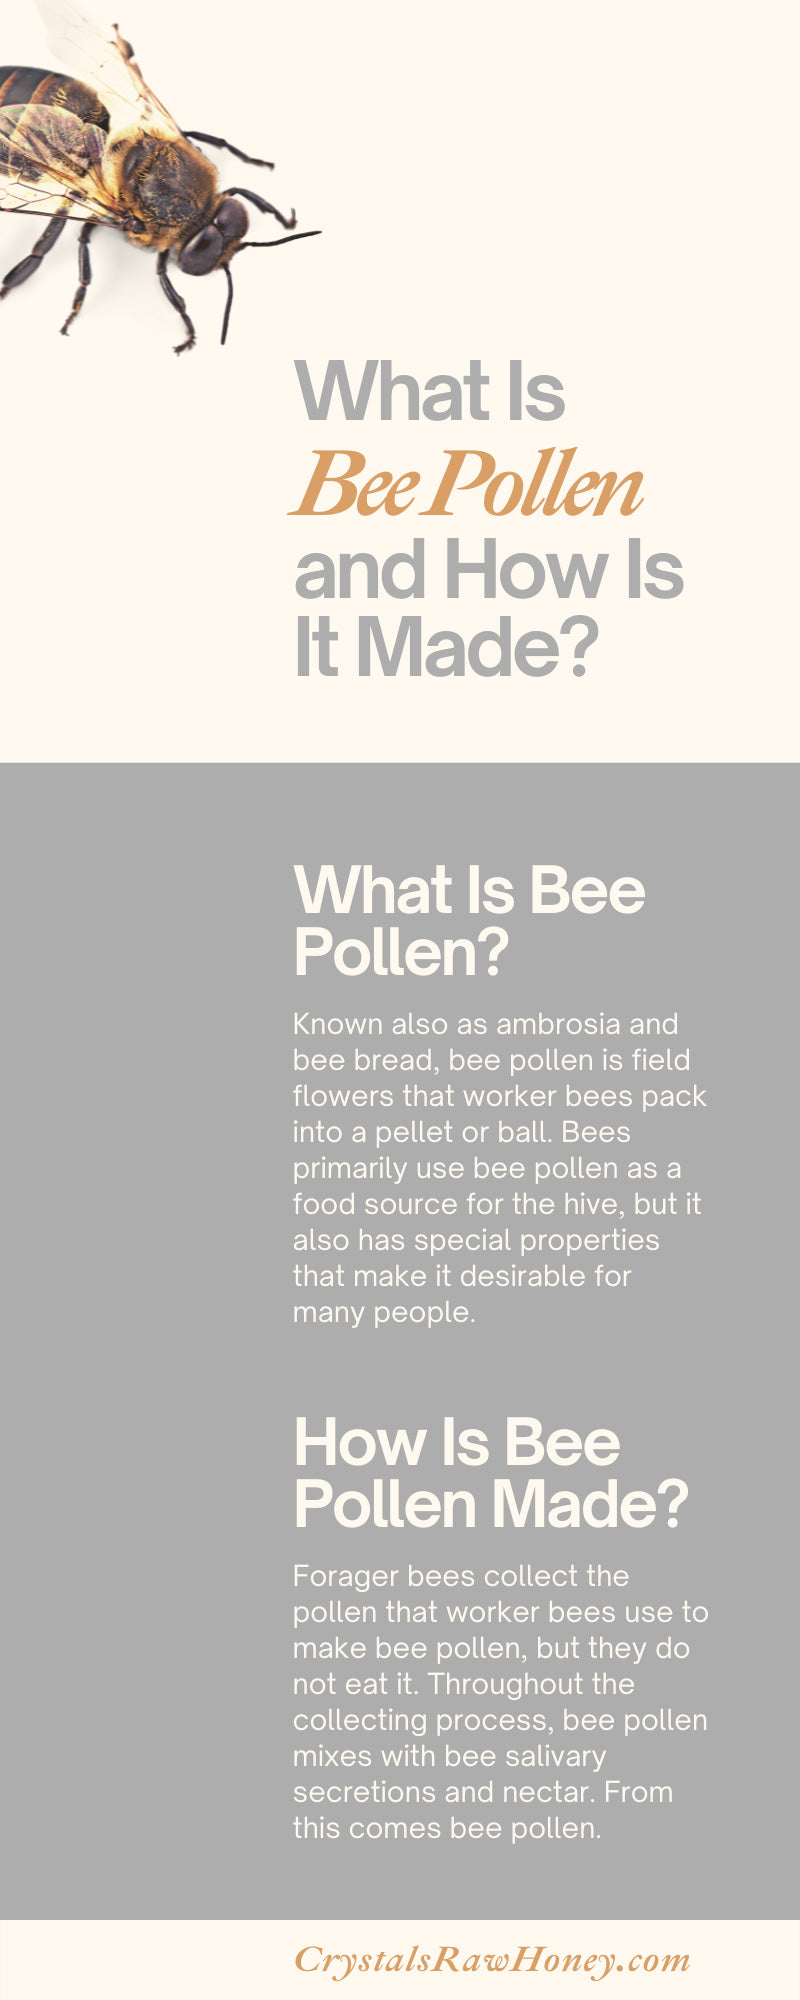 What Is Bee Pollen and How Is It Made?